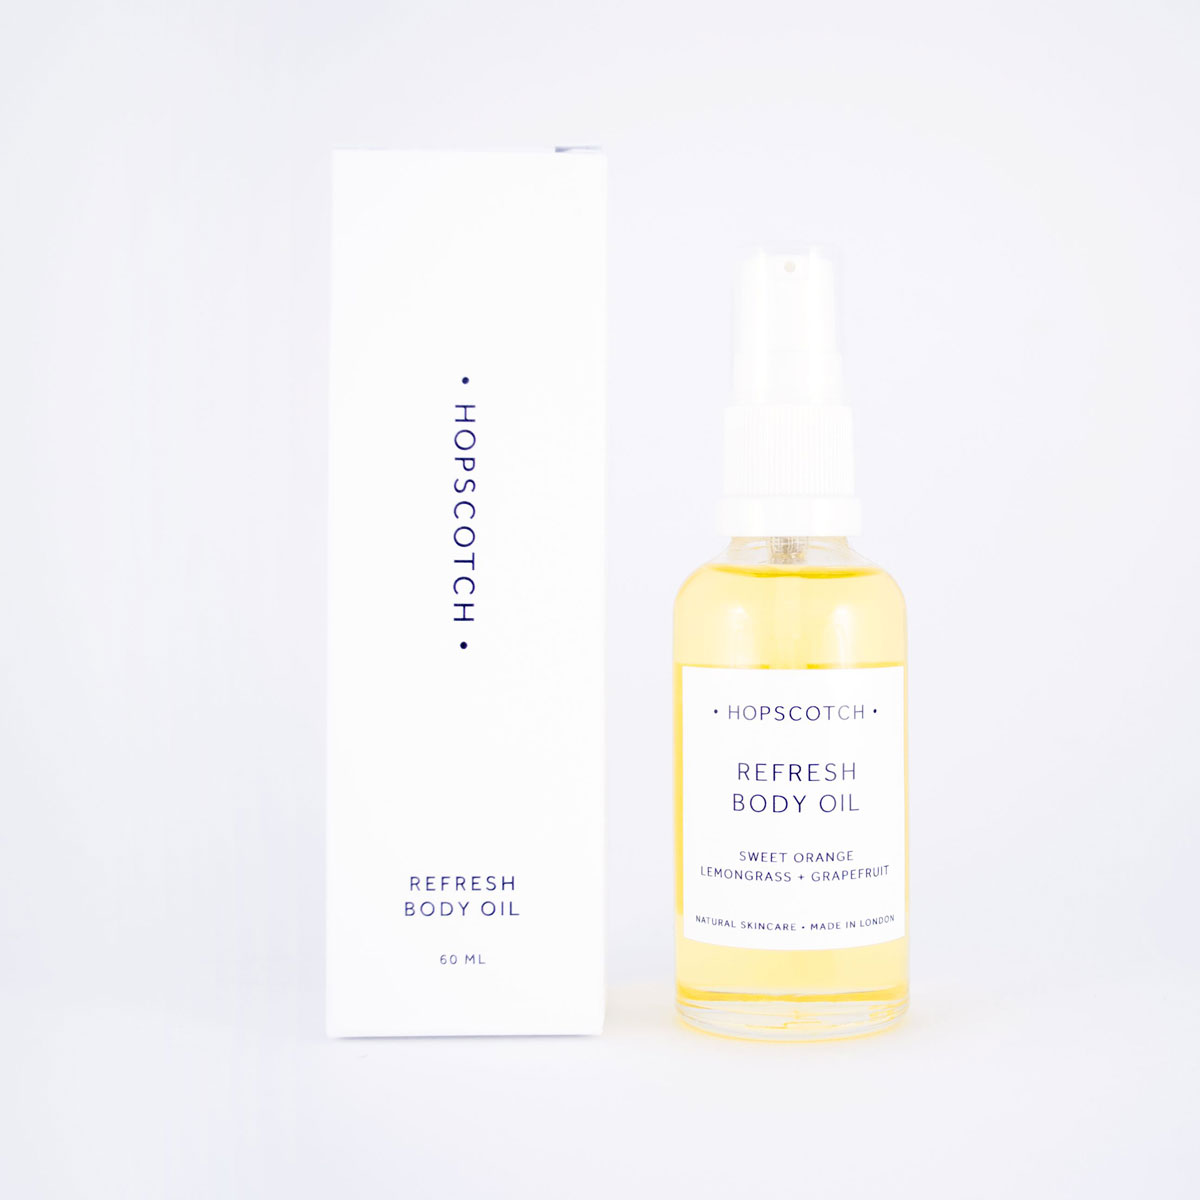 hopscotch refresh body oil